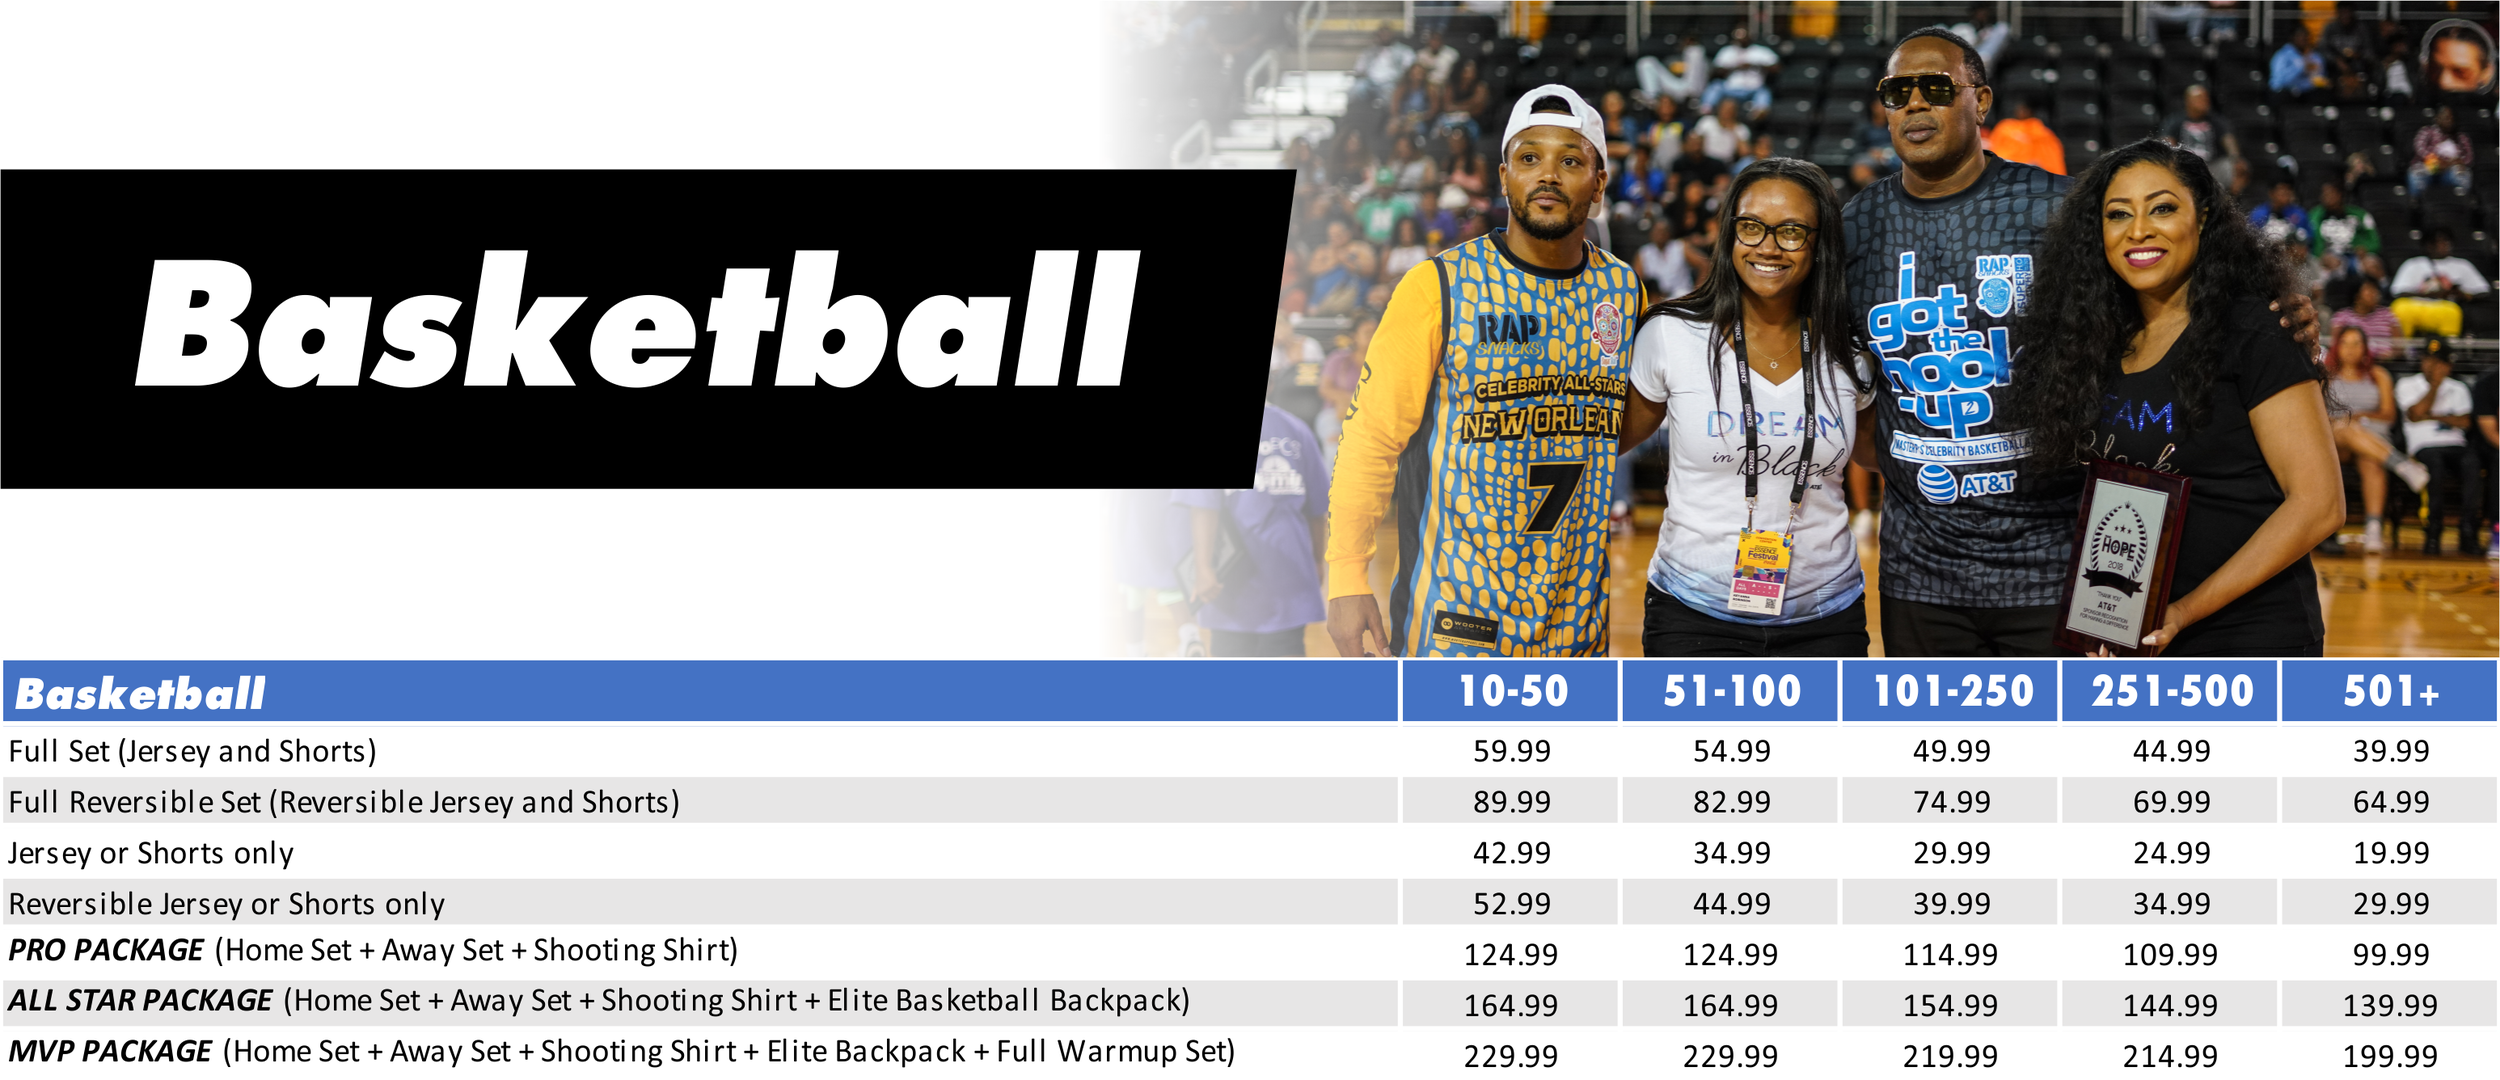 01 Basketball wooterapparel pricing.png